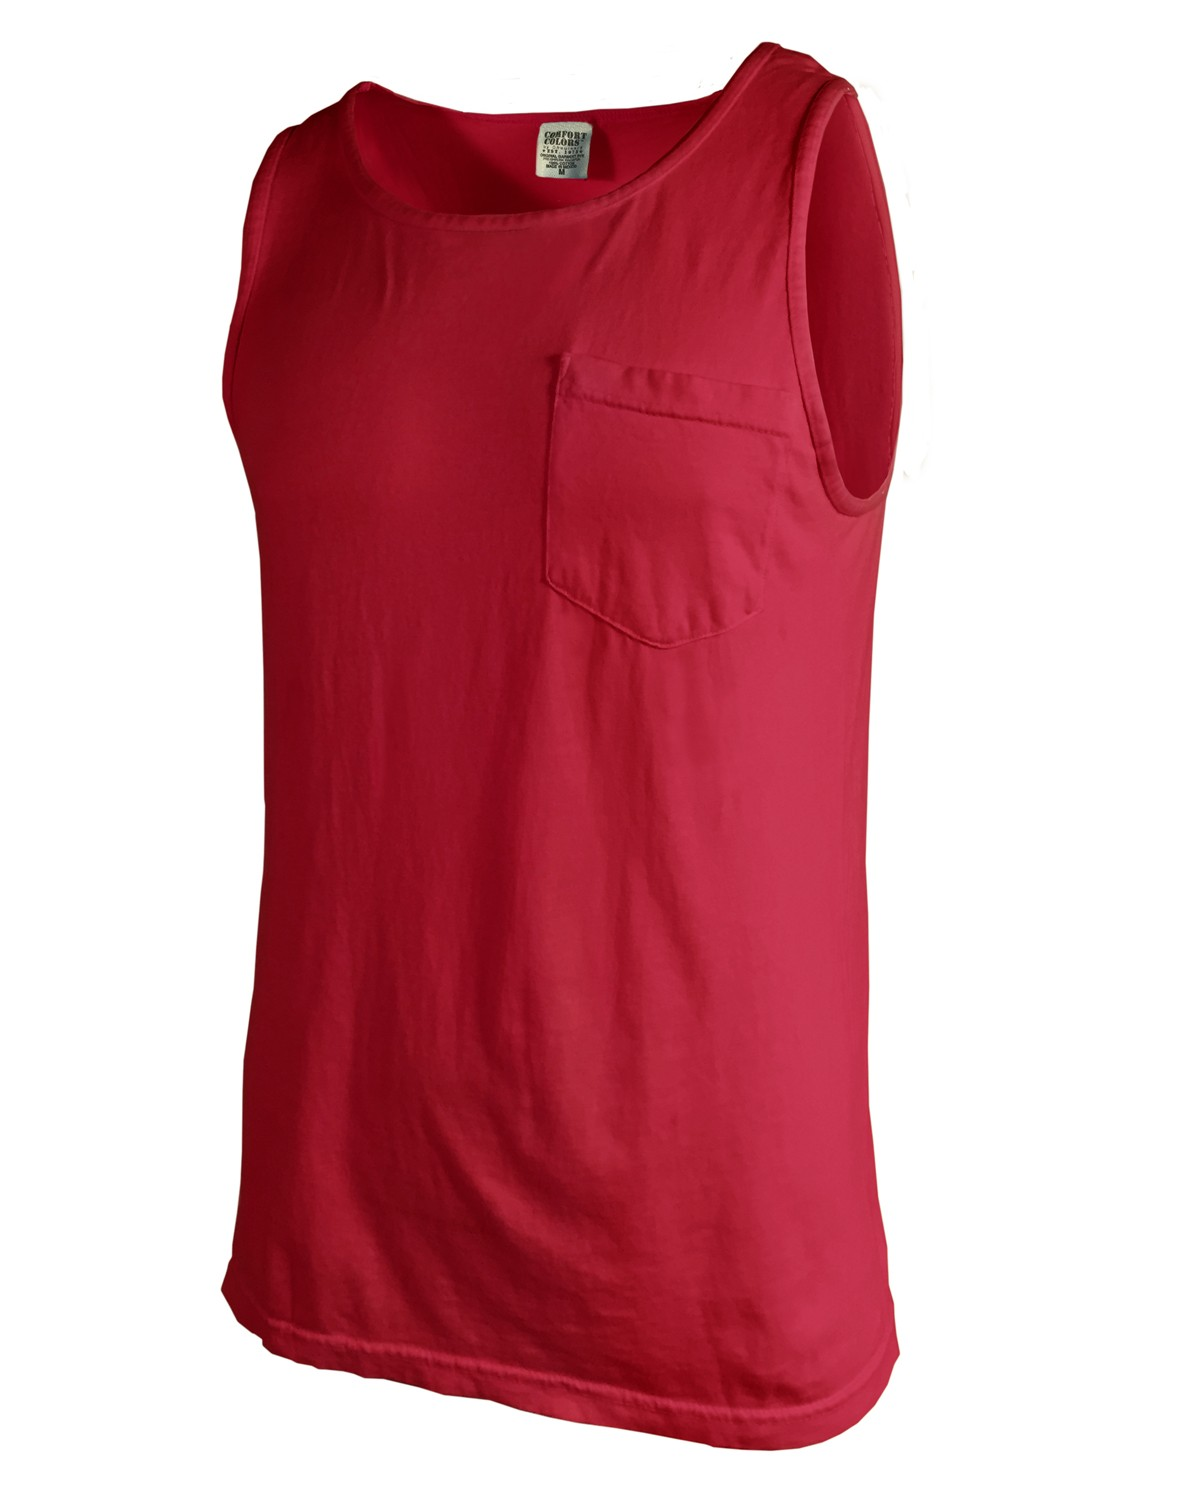 9330 Comfort Colors RED